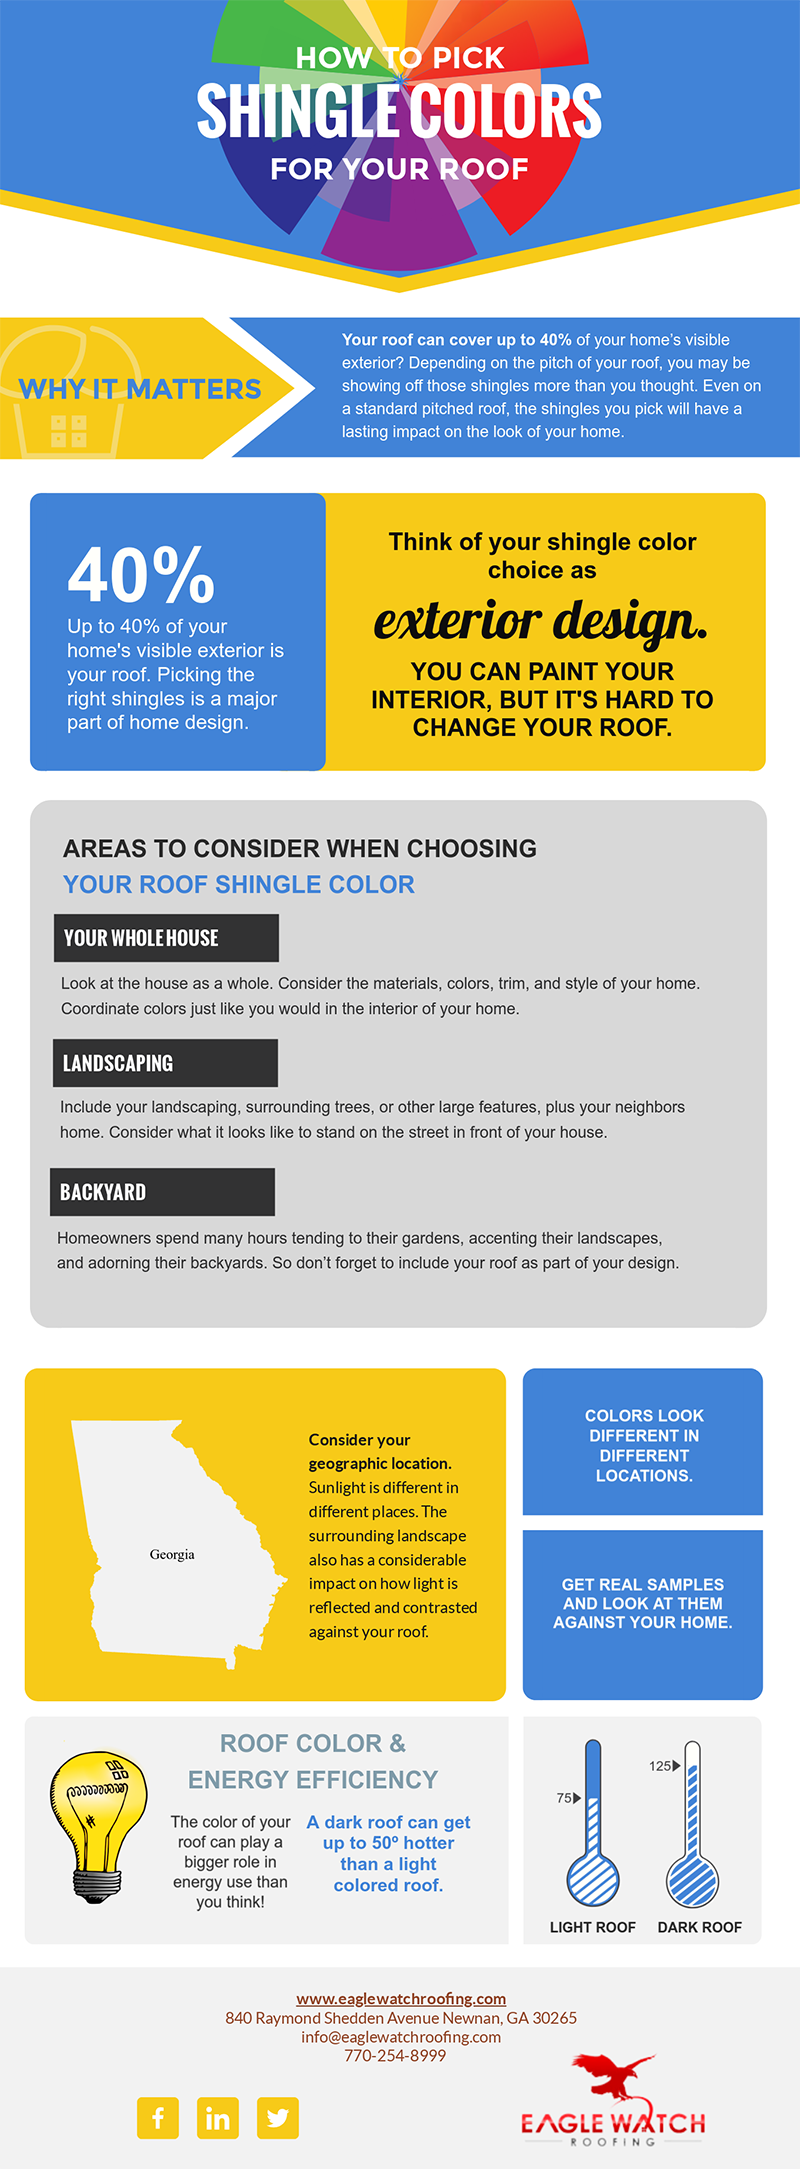 How to Pick Shingle Colors for Your Roof [infographic]